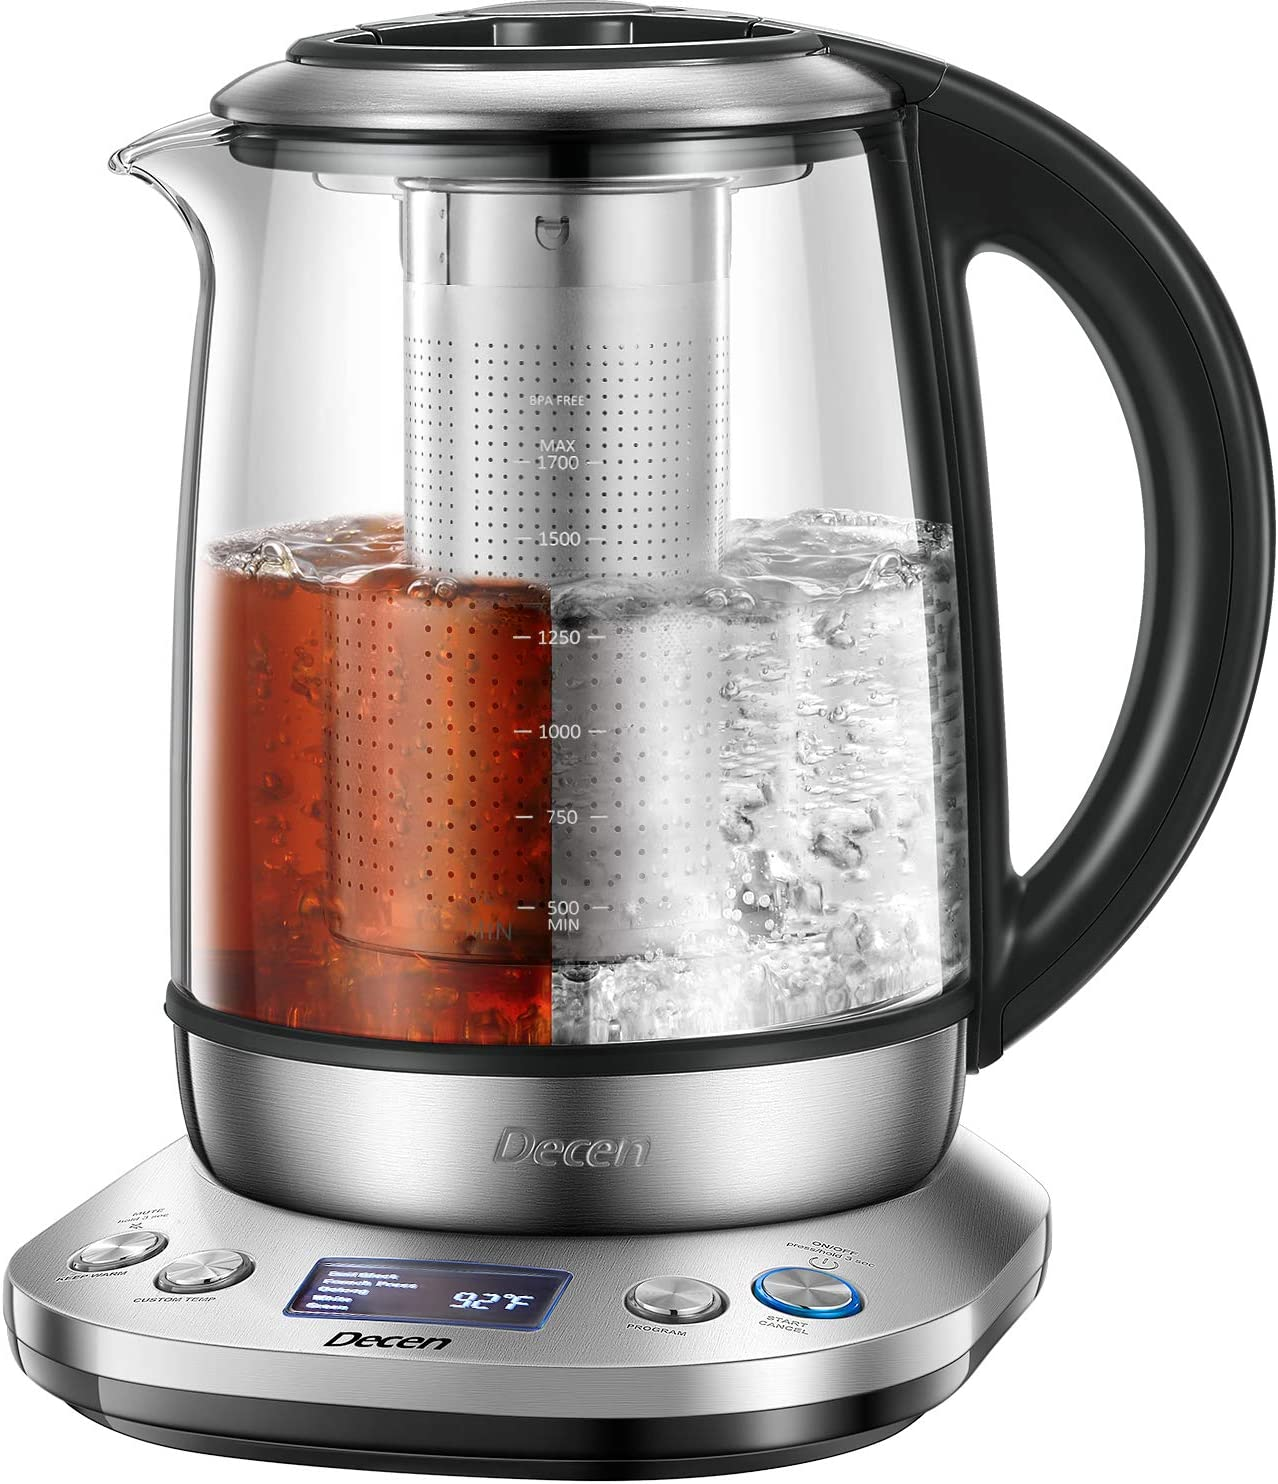 Electric Kettle 1.7L Tea Kettle with Removable Tea Infuser, LCD Display Stainless Steel Glass Boiler Hot Water Tea Heater, 120 Mins Keep Warm & Variable Temperature, 1200W